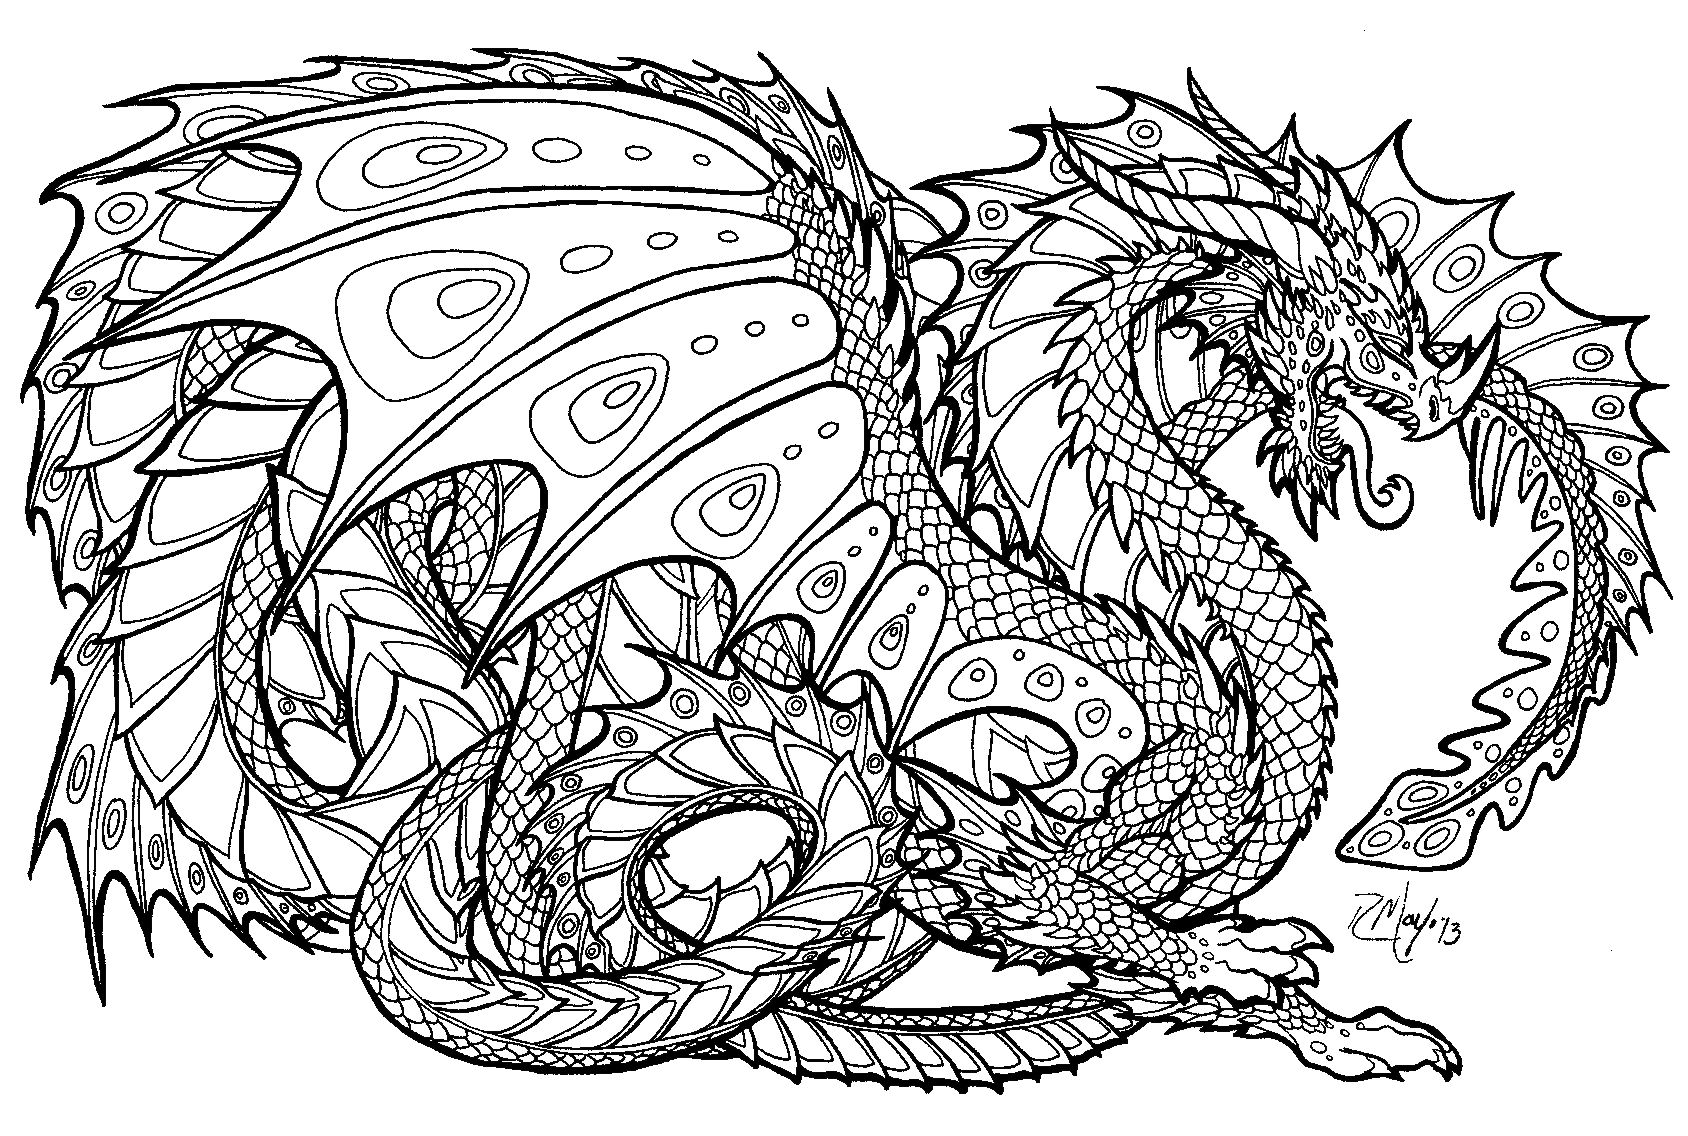 Free Printable Coloring Pages For Adults Advanced Dragons Google Search Detailed Coloring Pages Dragon Coloring Page Mandala Coloring Pages